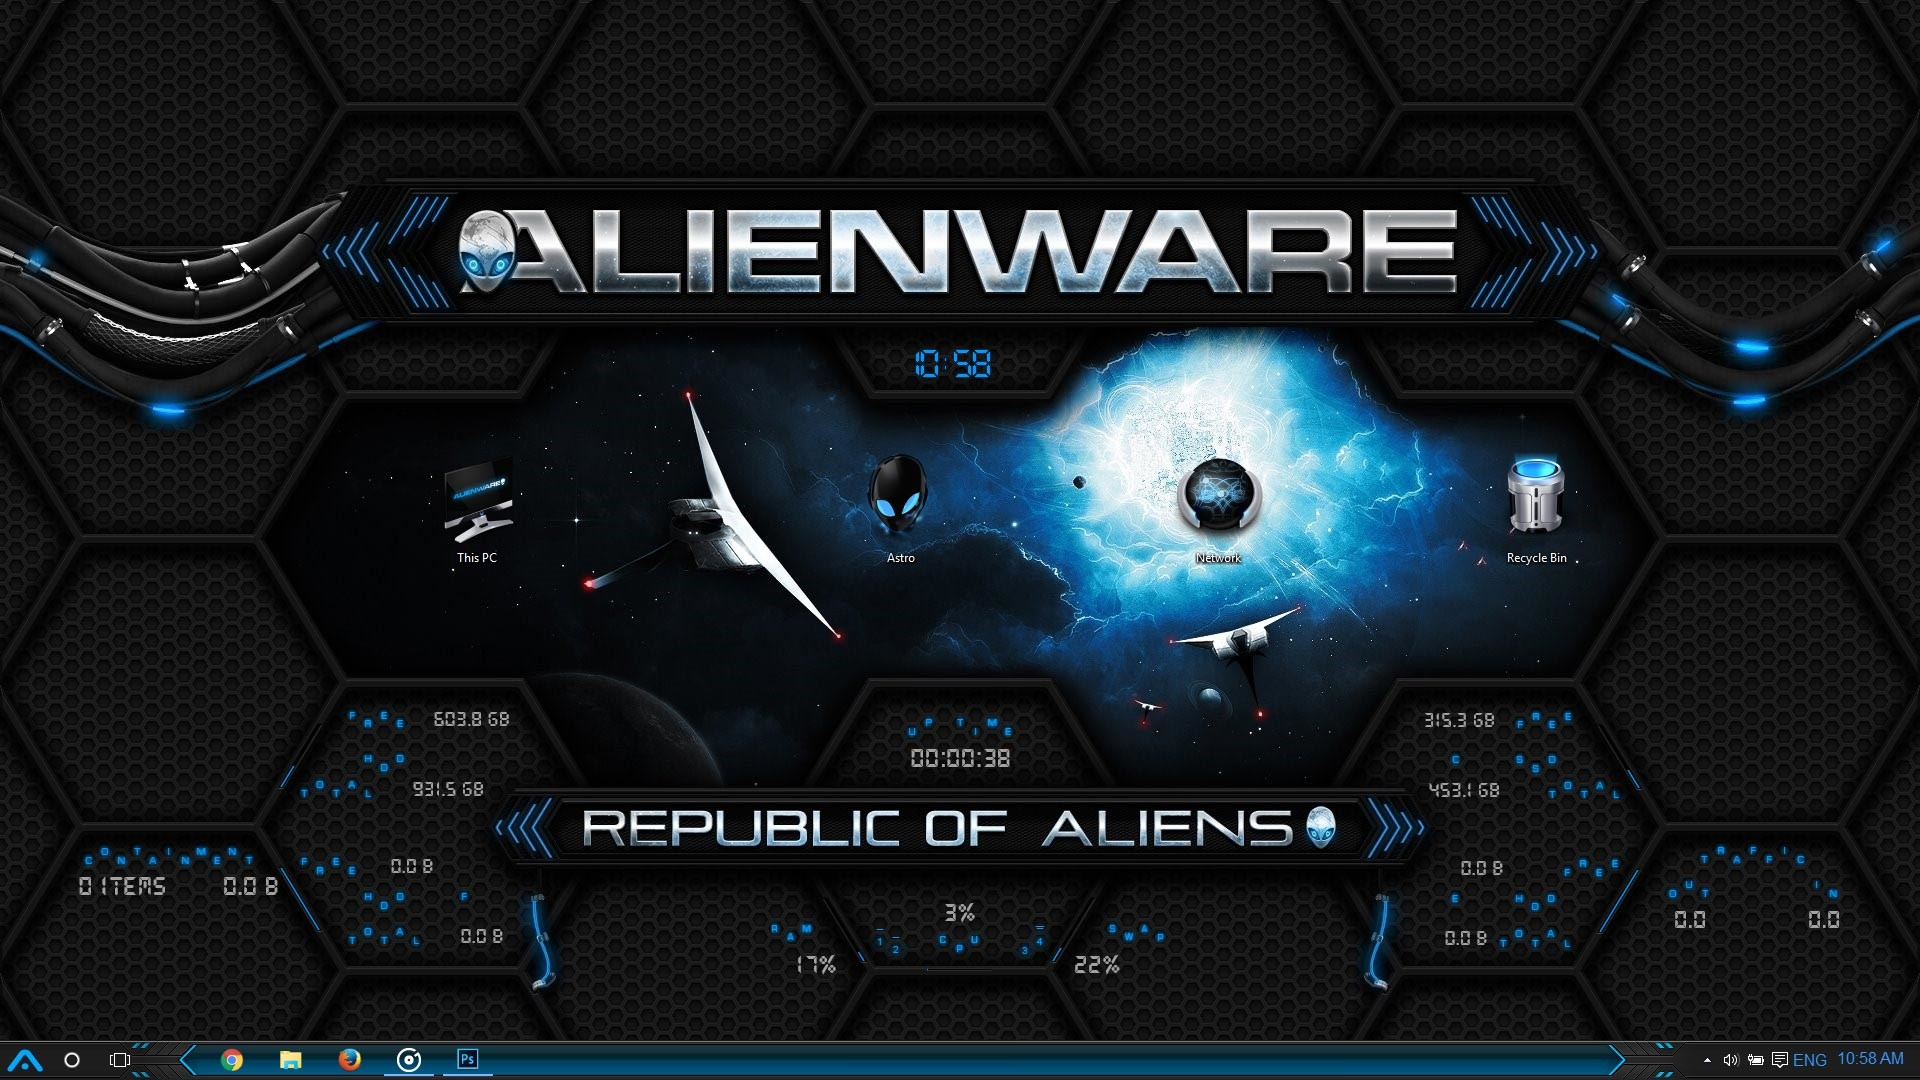 Alienware wallpaper pack 63 images 1920x1200 alienware green wallpapers full hd wallpaper search voltagebd Gallery